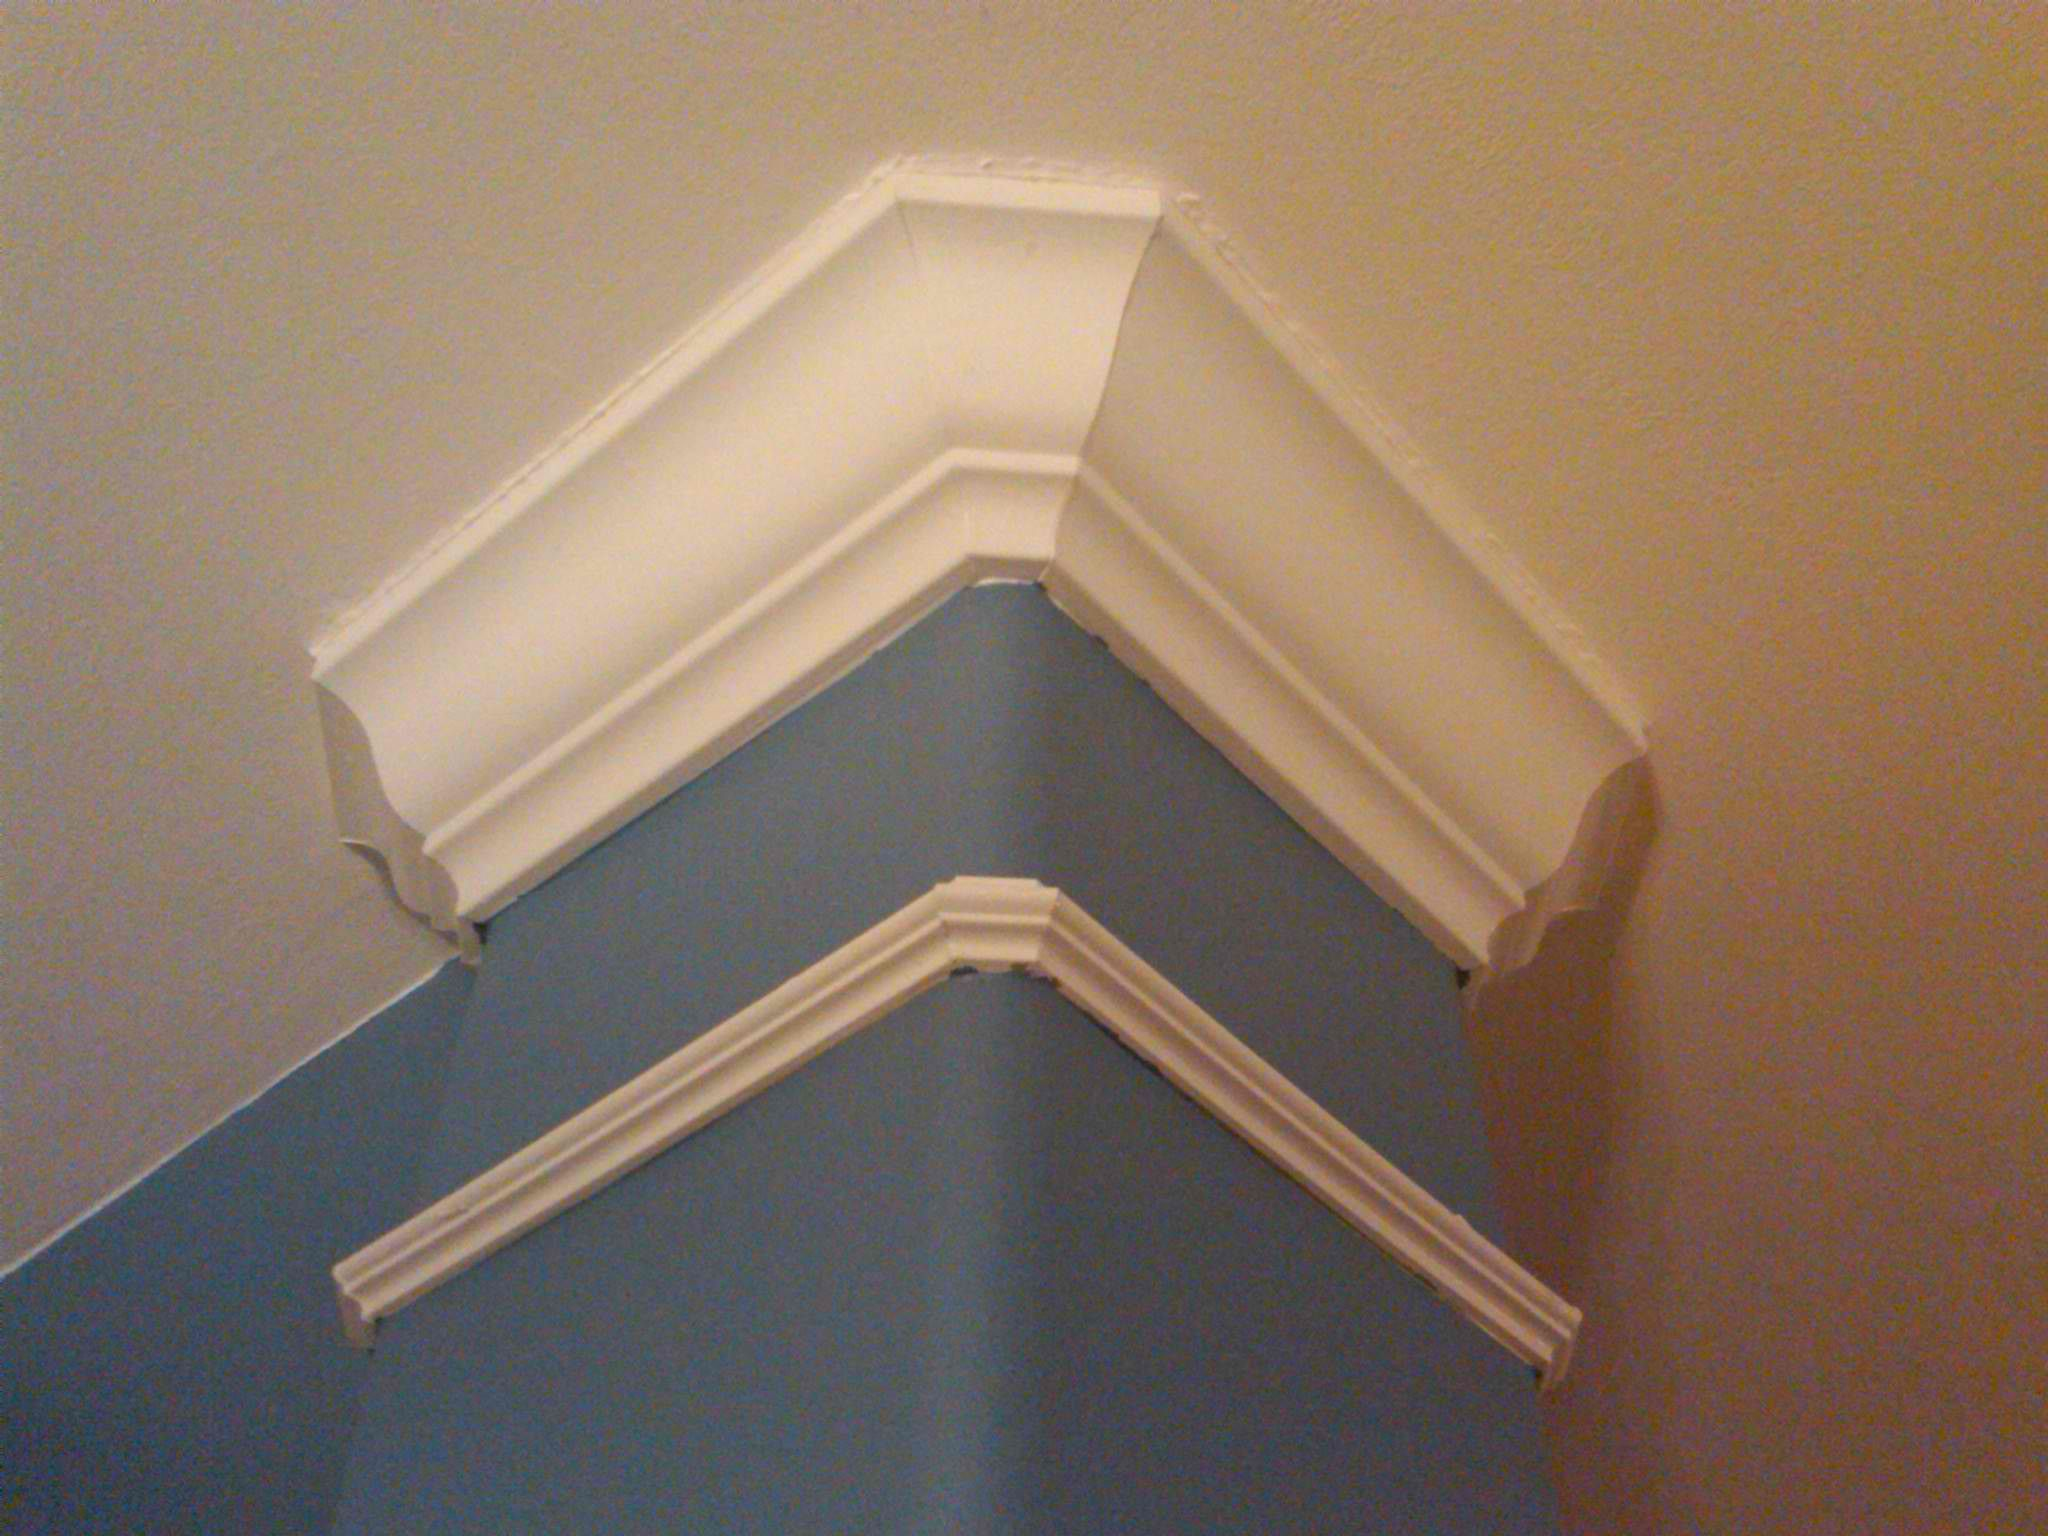 How Can I Install Crown Cornice Molding And Trim On Rounded Outside Corners Home Improvement Stack Exchan In 2020 Moldings And Trim Crown Molding Foam Crown Molding